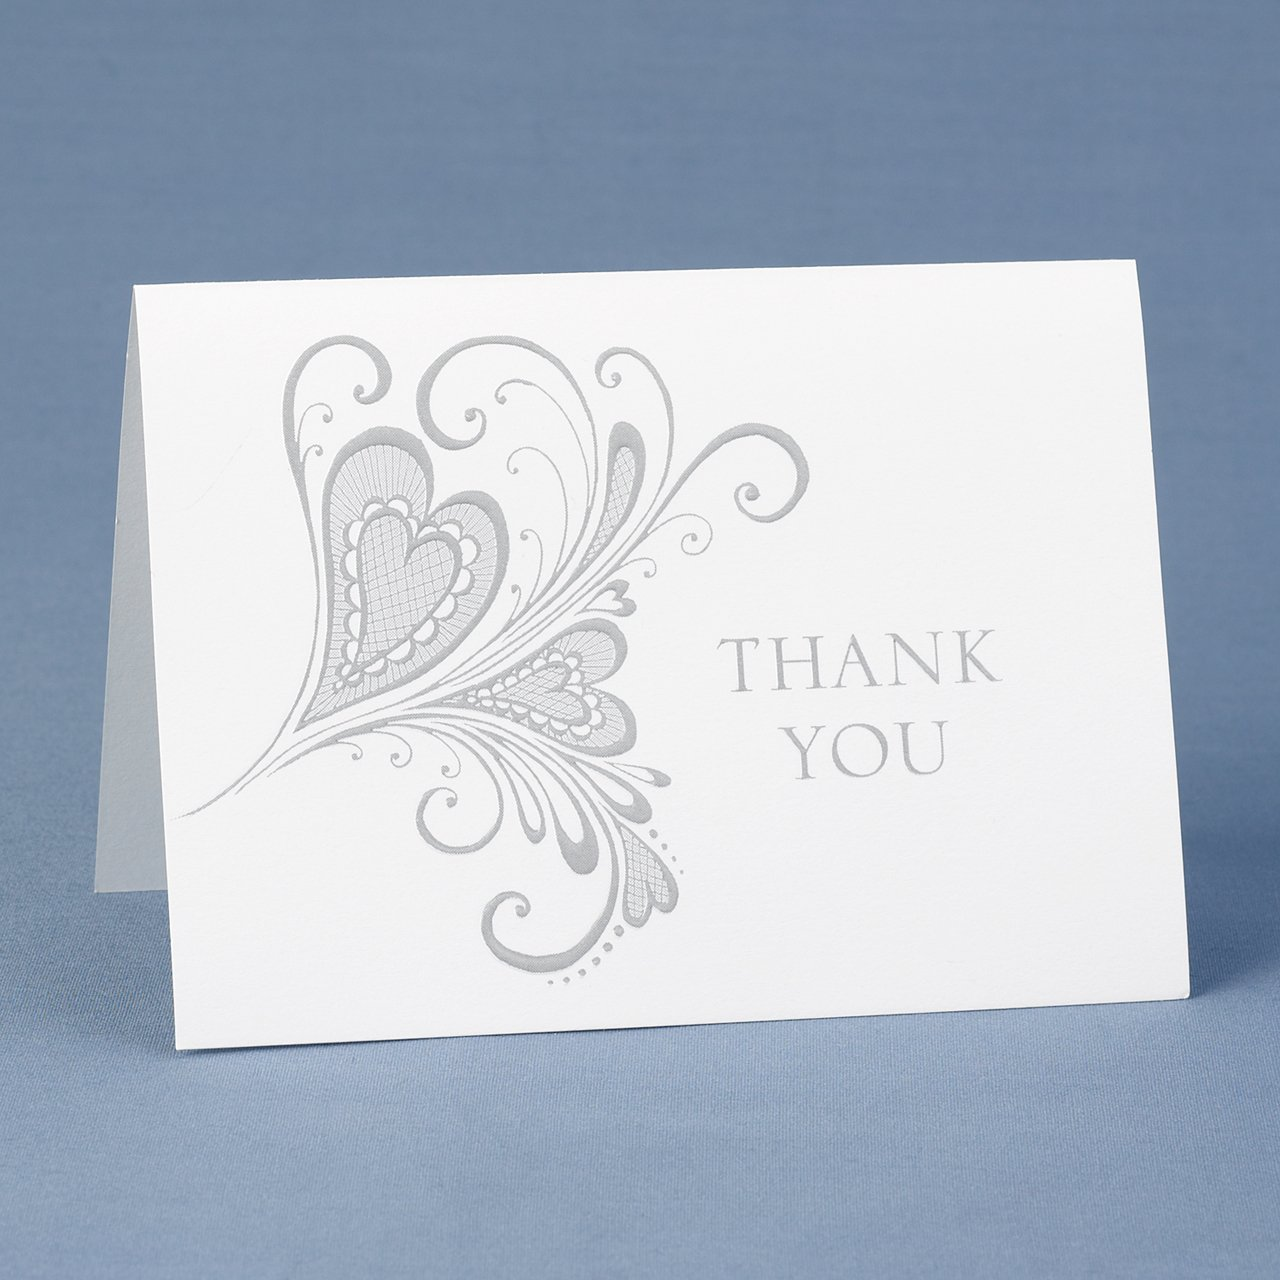 Amazon Hortense B Hewitt Heartfelt Thank You Cards Wedding – Thank You Cards Weddings